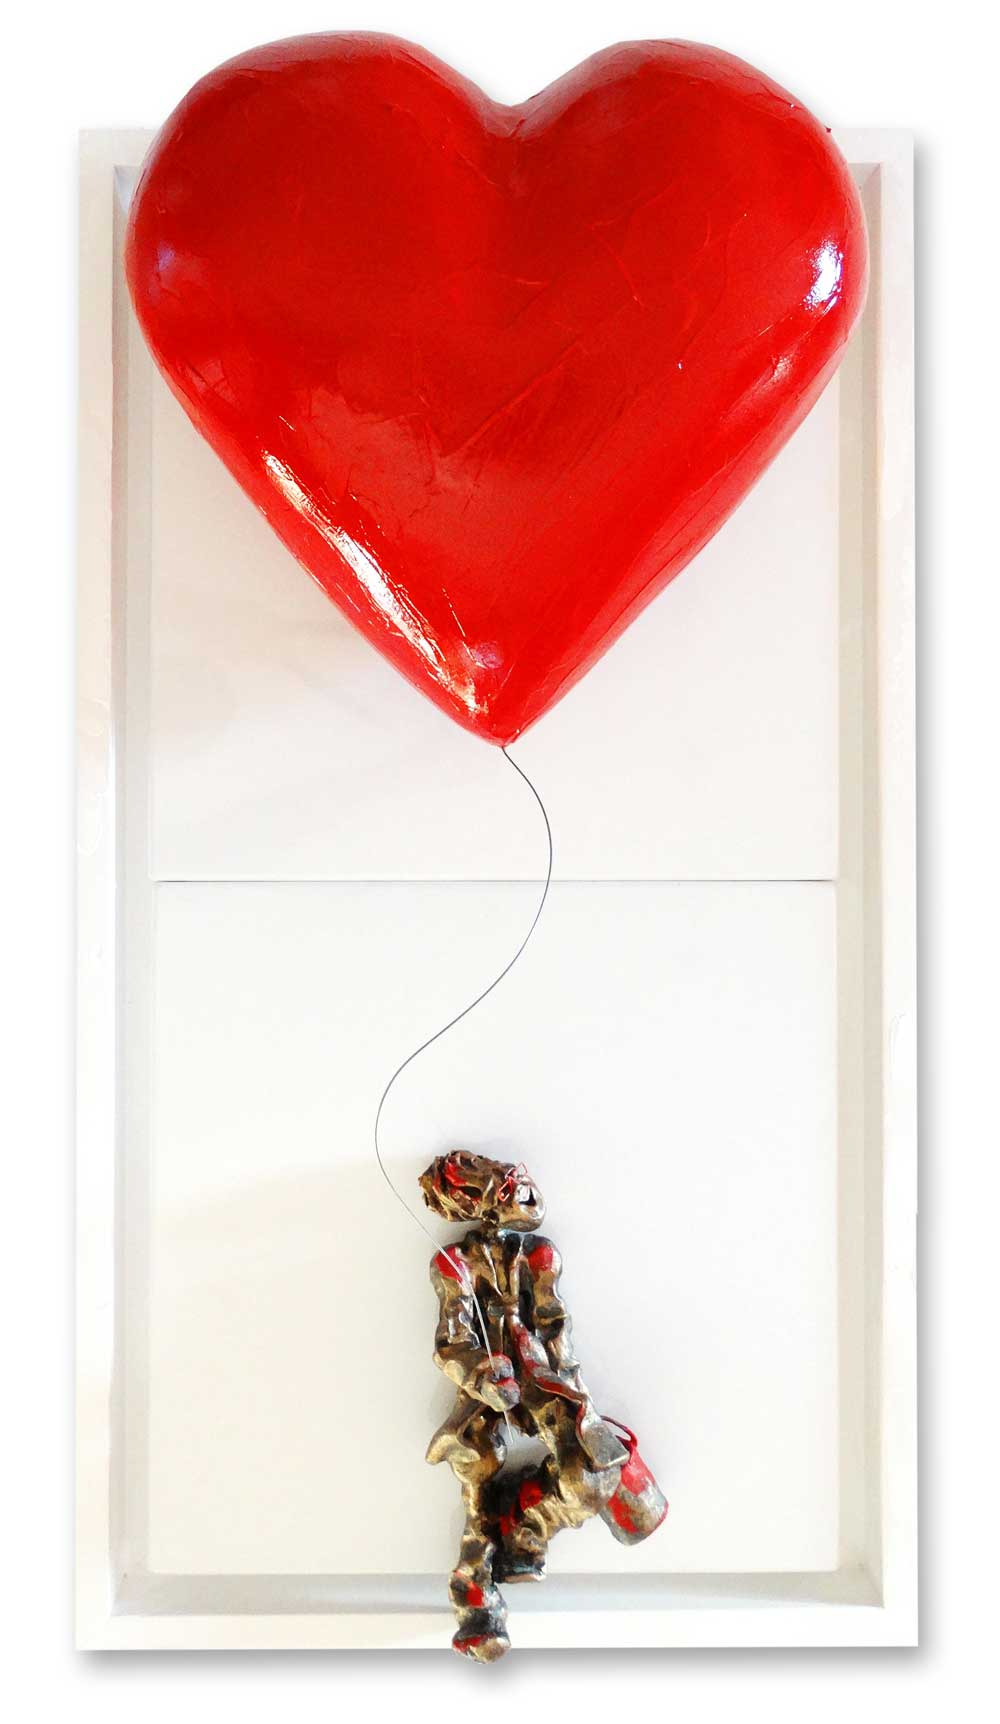 Bernard Saint Maxent - Big Love Balloon - 40x80cm